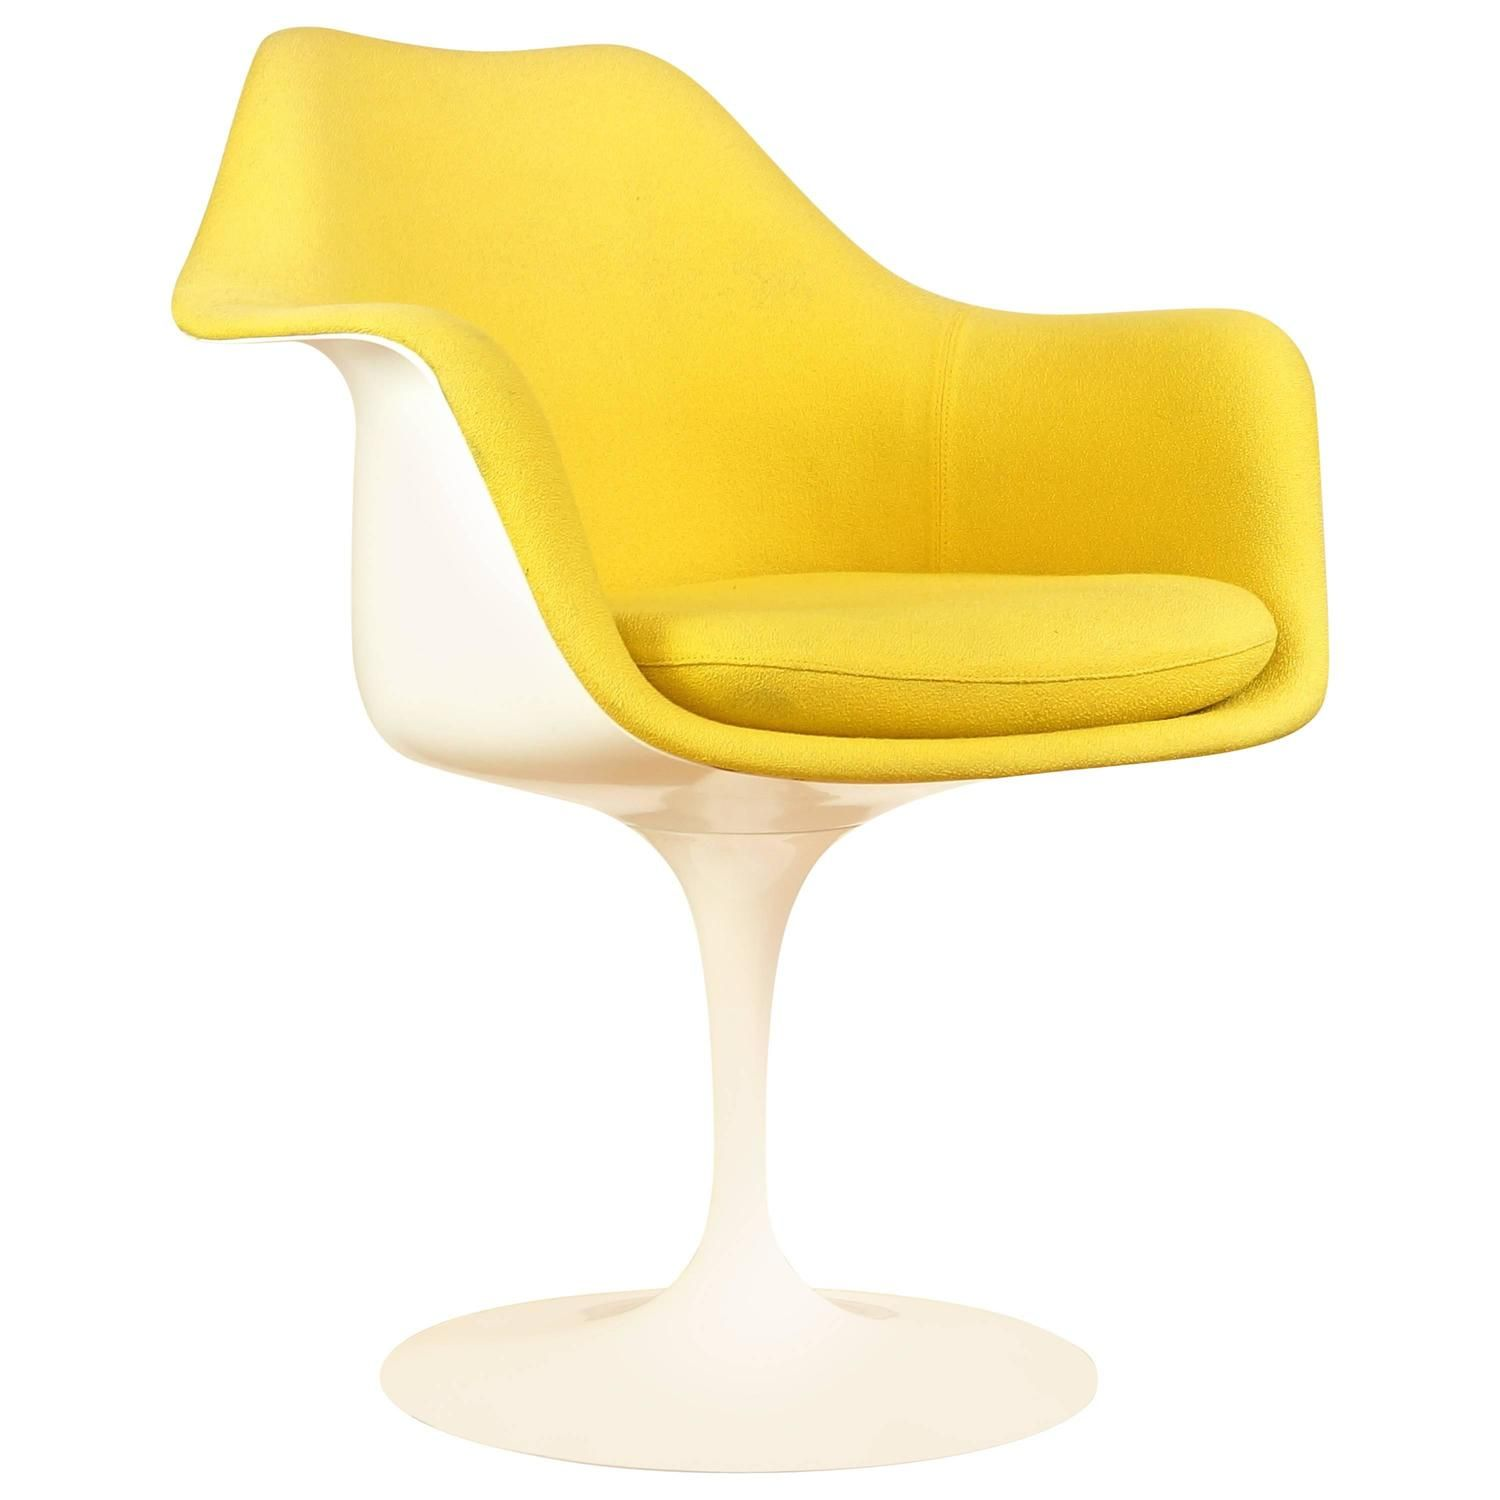 Charmant Vintage Tulip Chair Or Armchair By Eero Saarinen For Knoll, Yellow  Upholstery